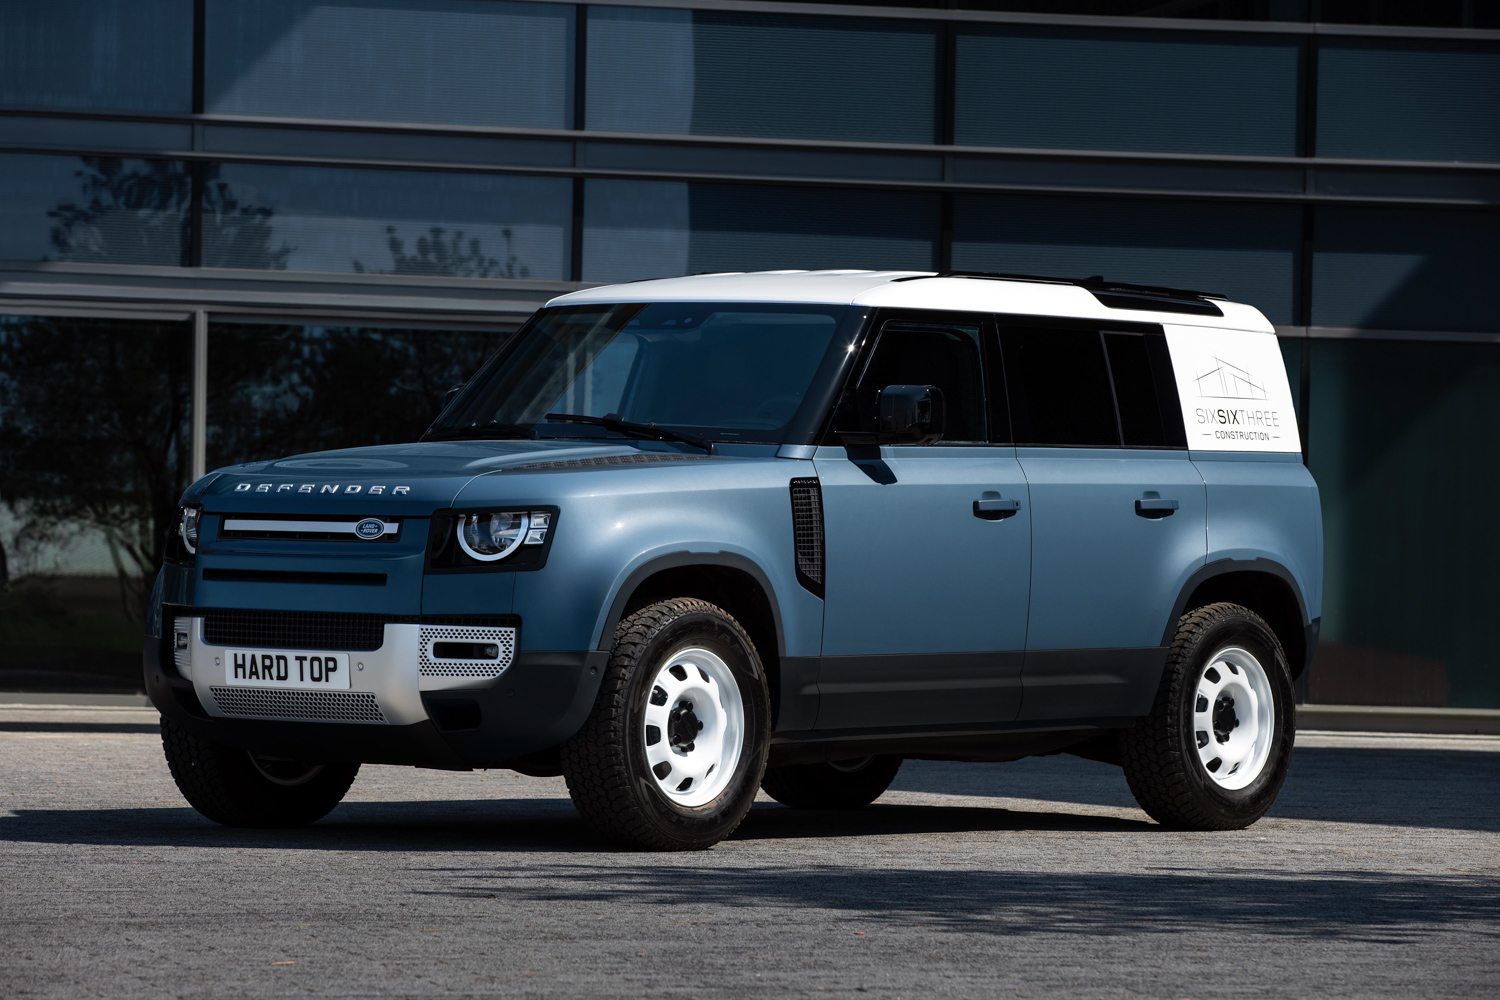 Car News | Hard Top name returns for commercial Land Rover | CompleteCar.ie